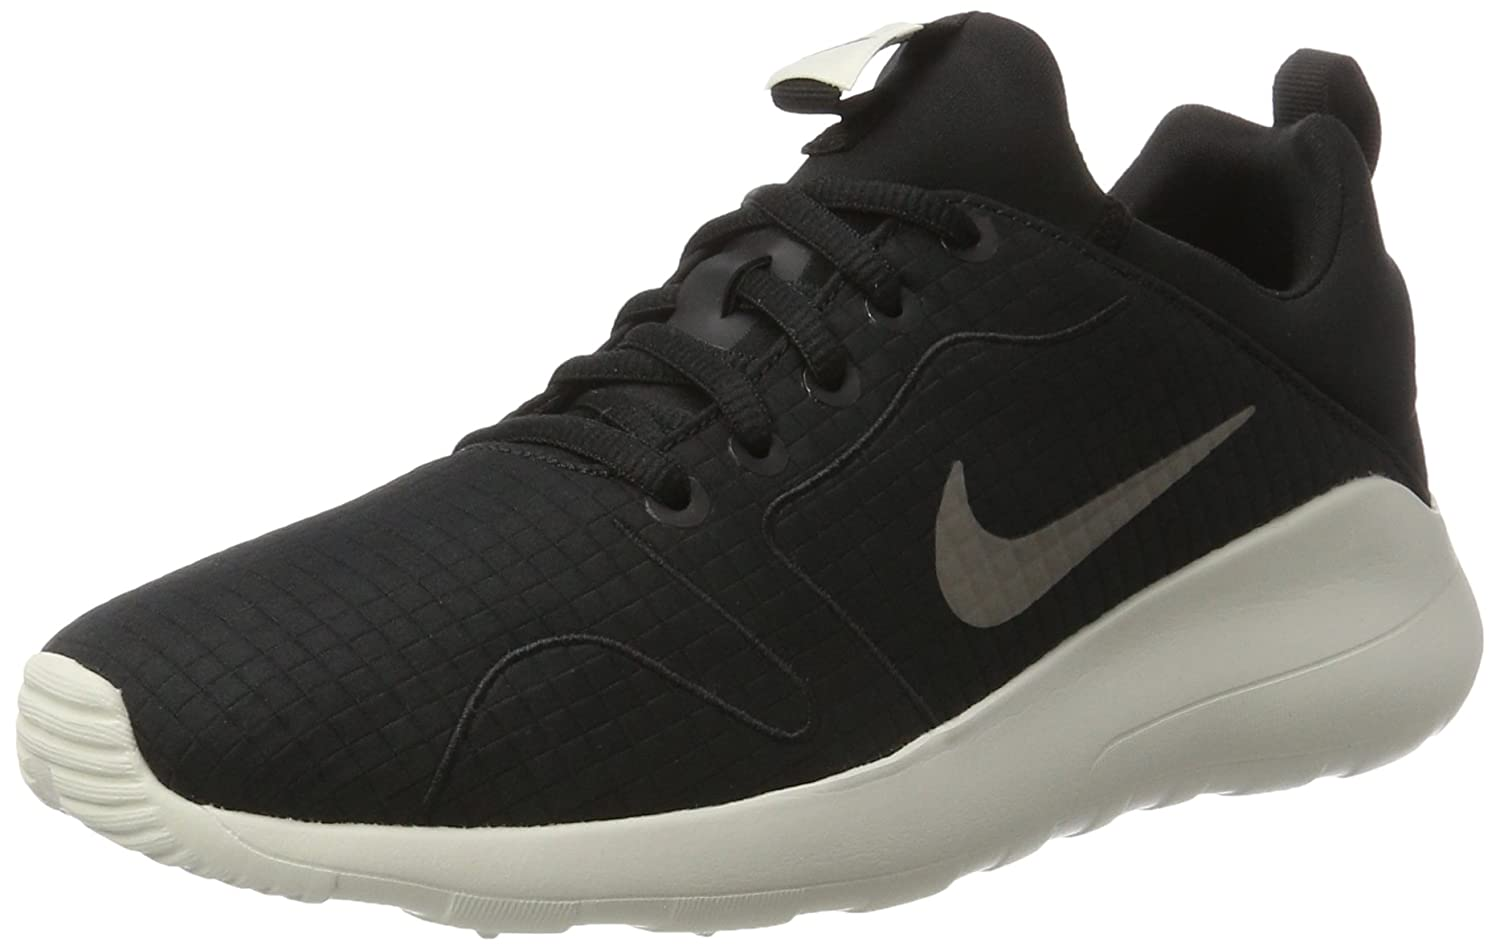 Nike Herren Kaishi 2.0 Prem Sneakers  44.5 EU|Mehrfarbig (Black / Light Bone)